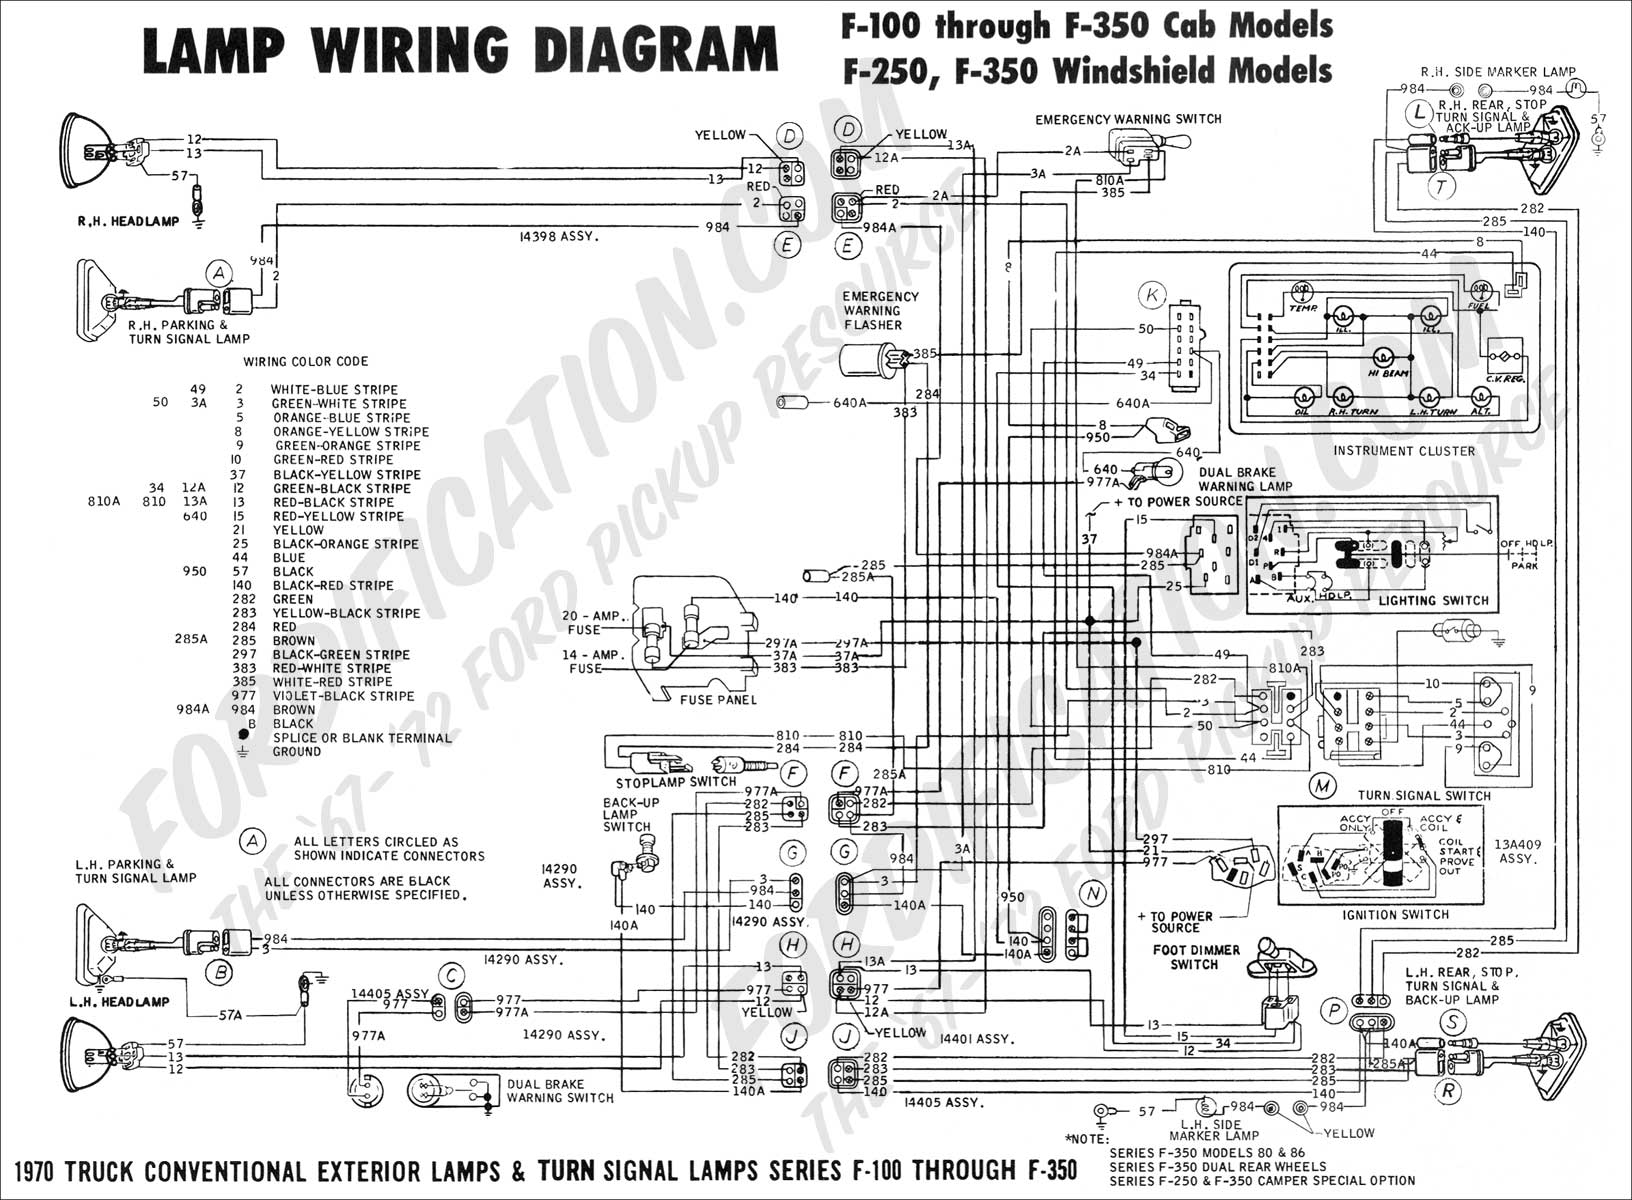 wiring diagram_70ext lights01?resize=665%2C489 ford f150 right rear taillight is out where is fuse and how 1999 ford f150 turn signal wiring diagram at readyjetset.co